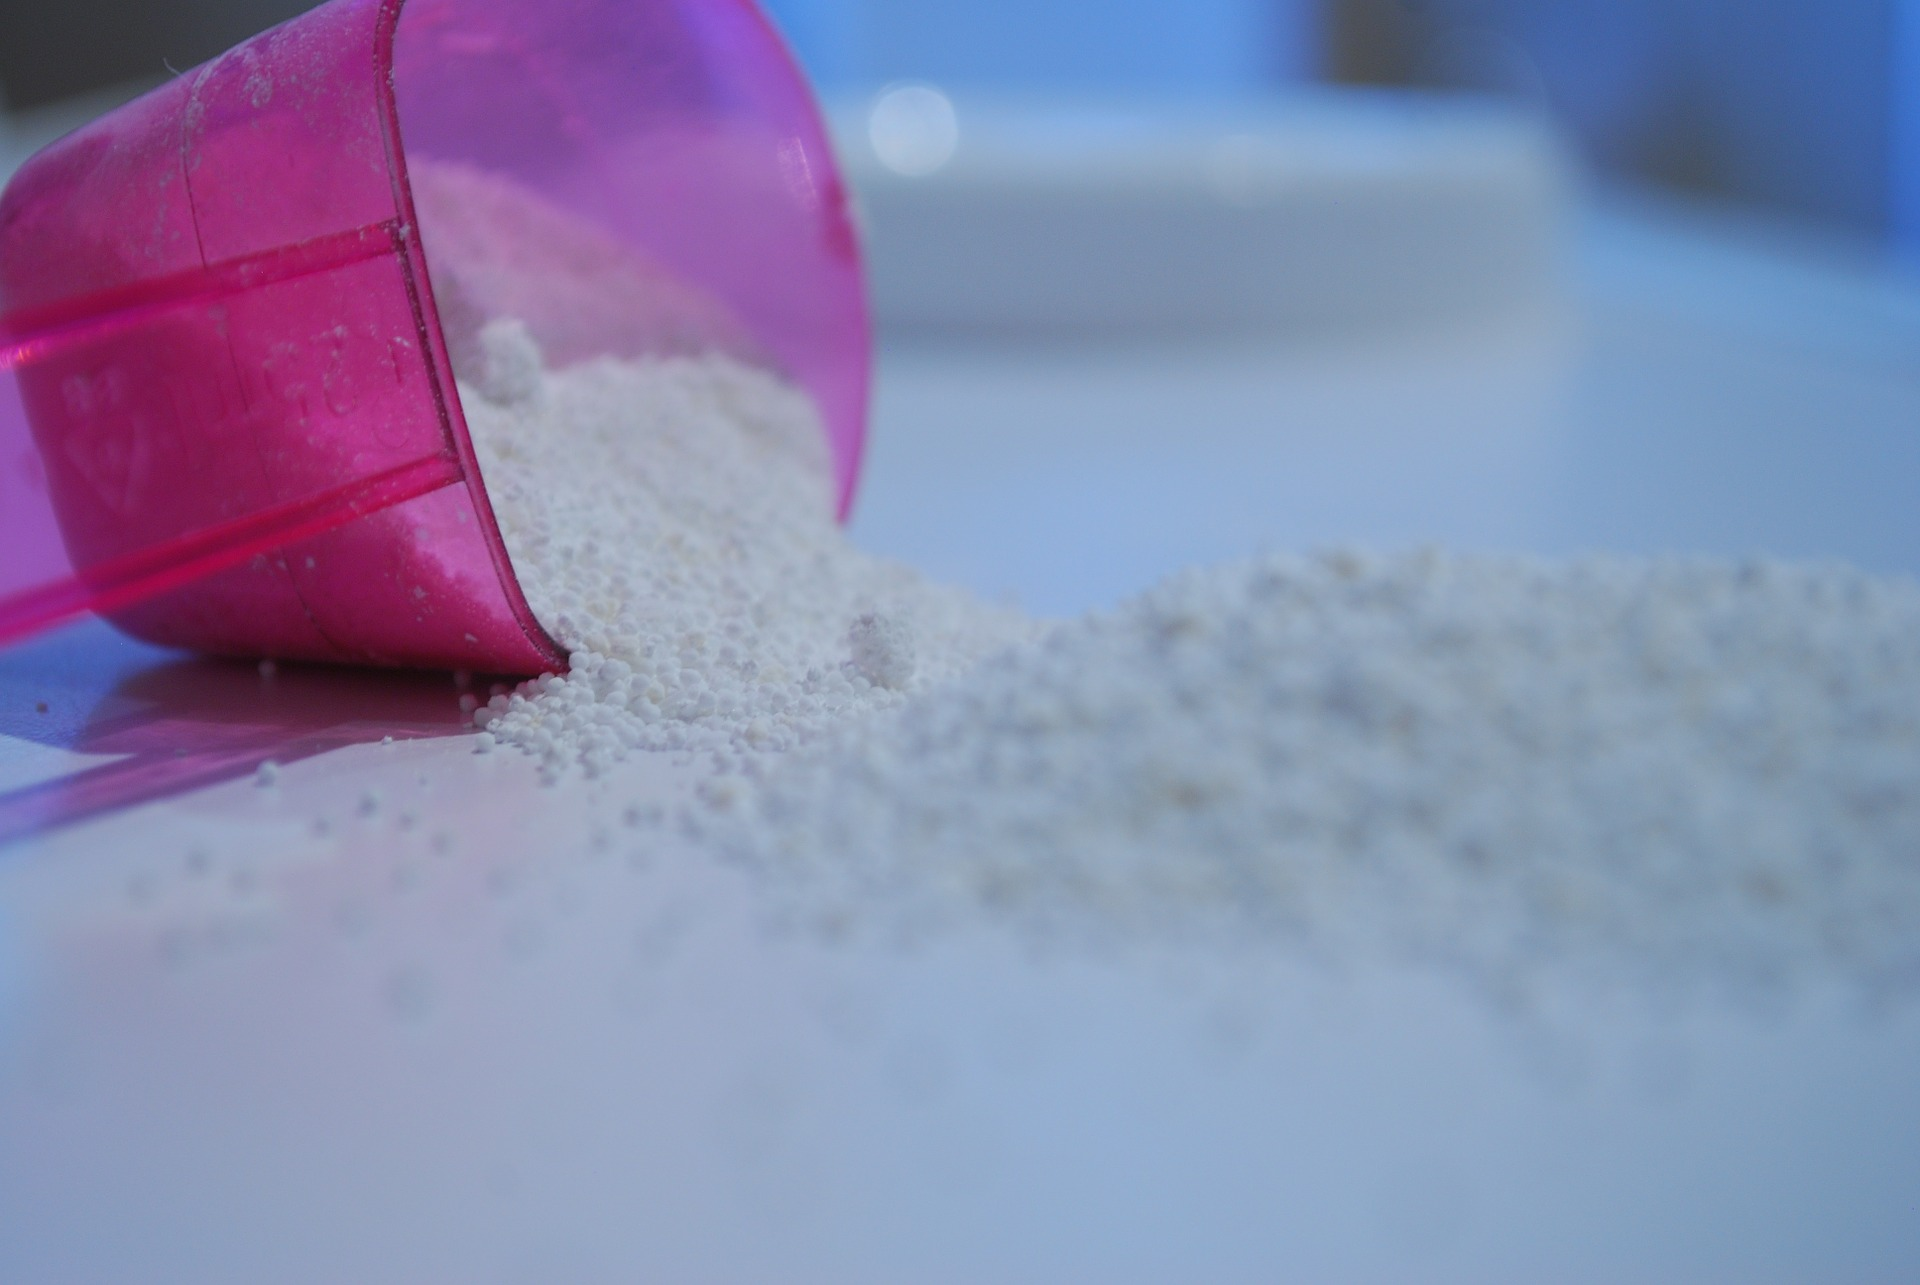 Cleaning Powder